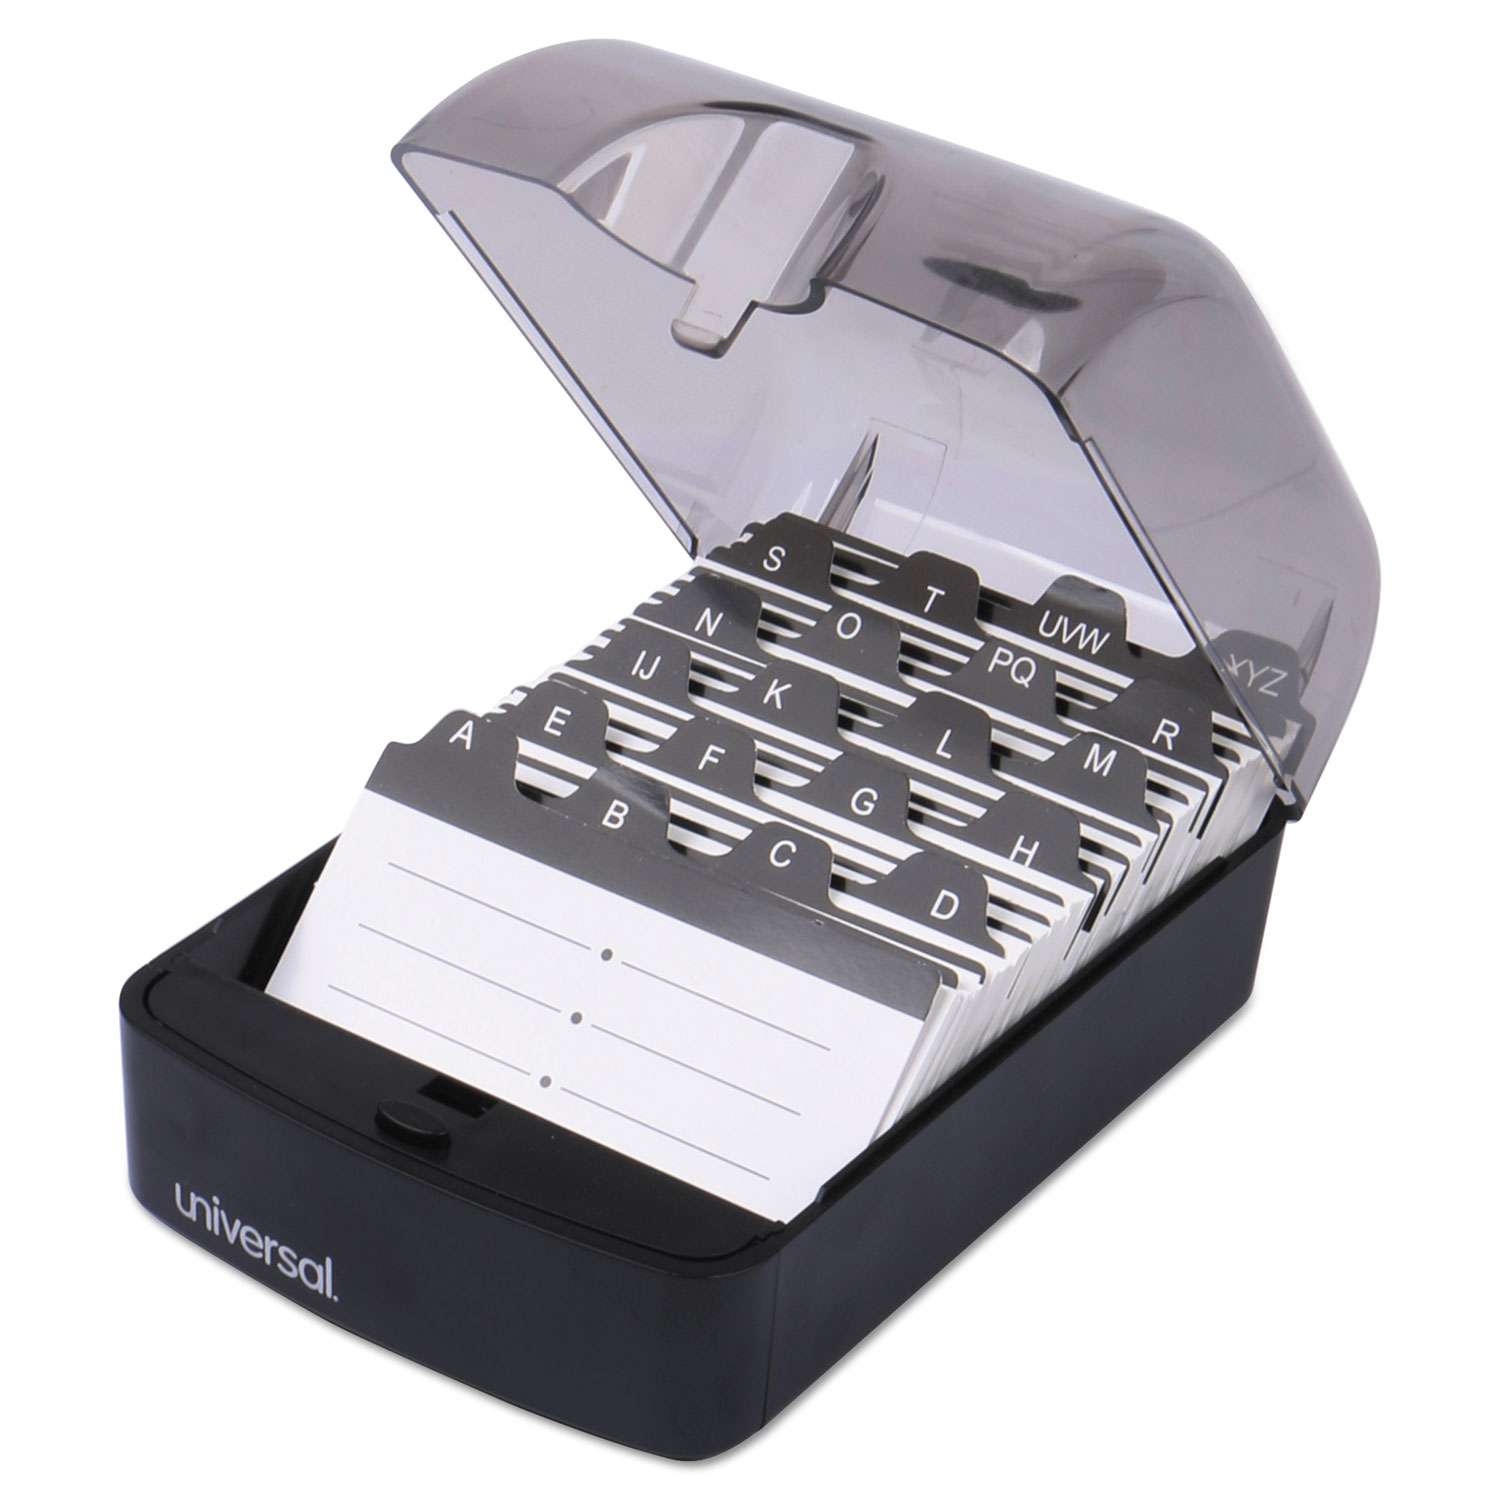 Business Card Holders | OnTimeSupplies - OnTimeSupplies.com